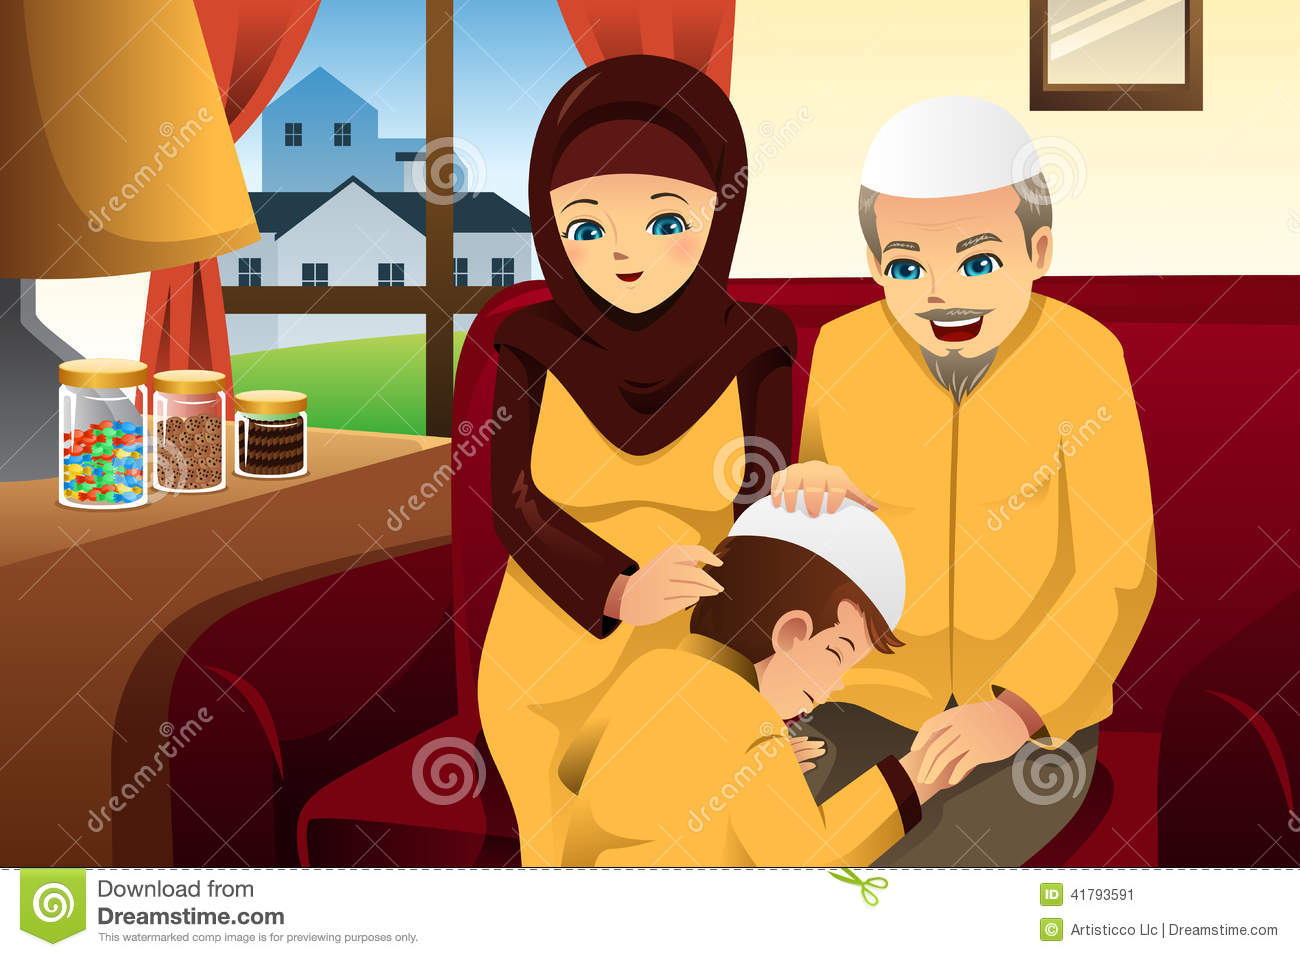 Download Happy Eid Al-Fitr Feast - family-celebrating-eid-al-fitr-vector-illustration-happy-41793591  Perfect Image Reference_709623 .jpg